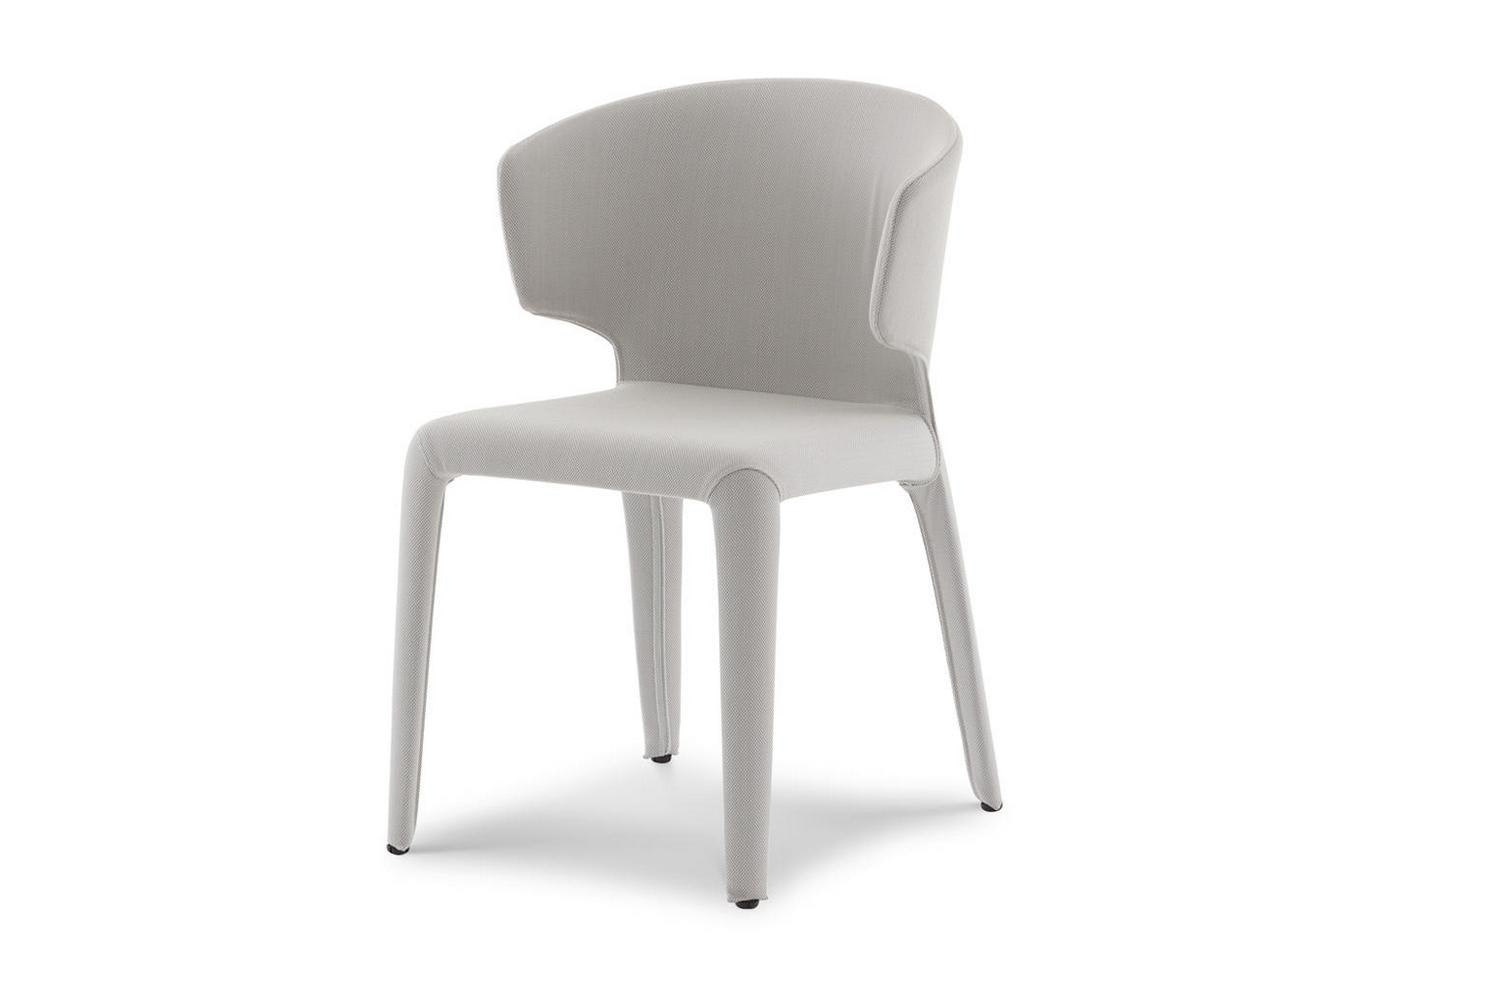 367 Hola Chair by Hannes Wettstein for Cassina